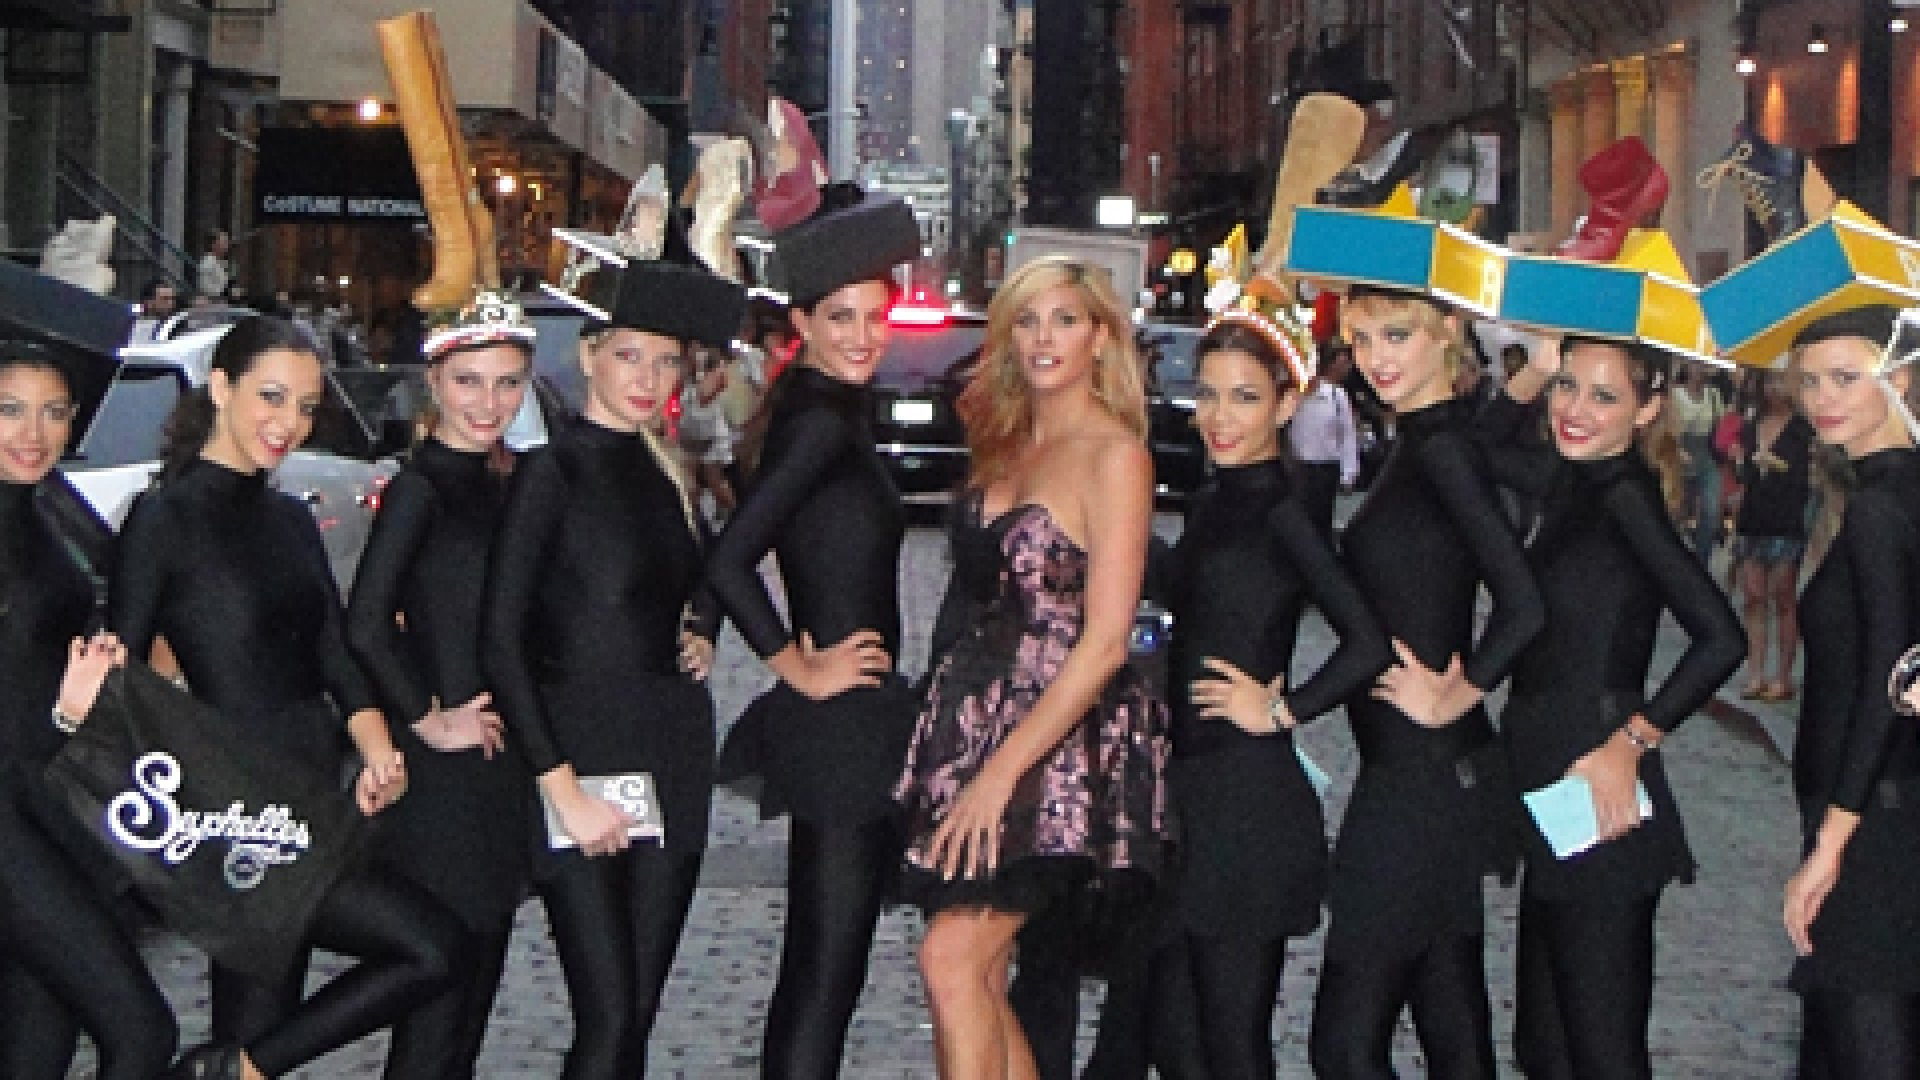 For the Seychelles Shoe Fashion Night Out 2011, Factory 360 had models in custom-designed hats featuring shoes from the new spring line march the streets of New York city neighborhoods as a guerrilla marketing tactic.